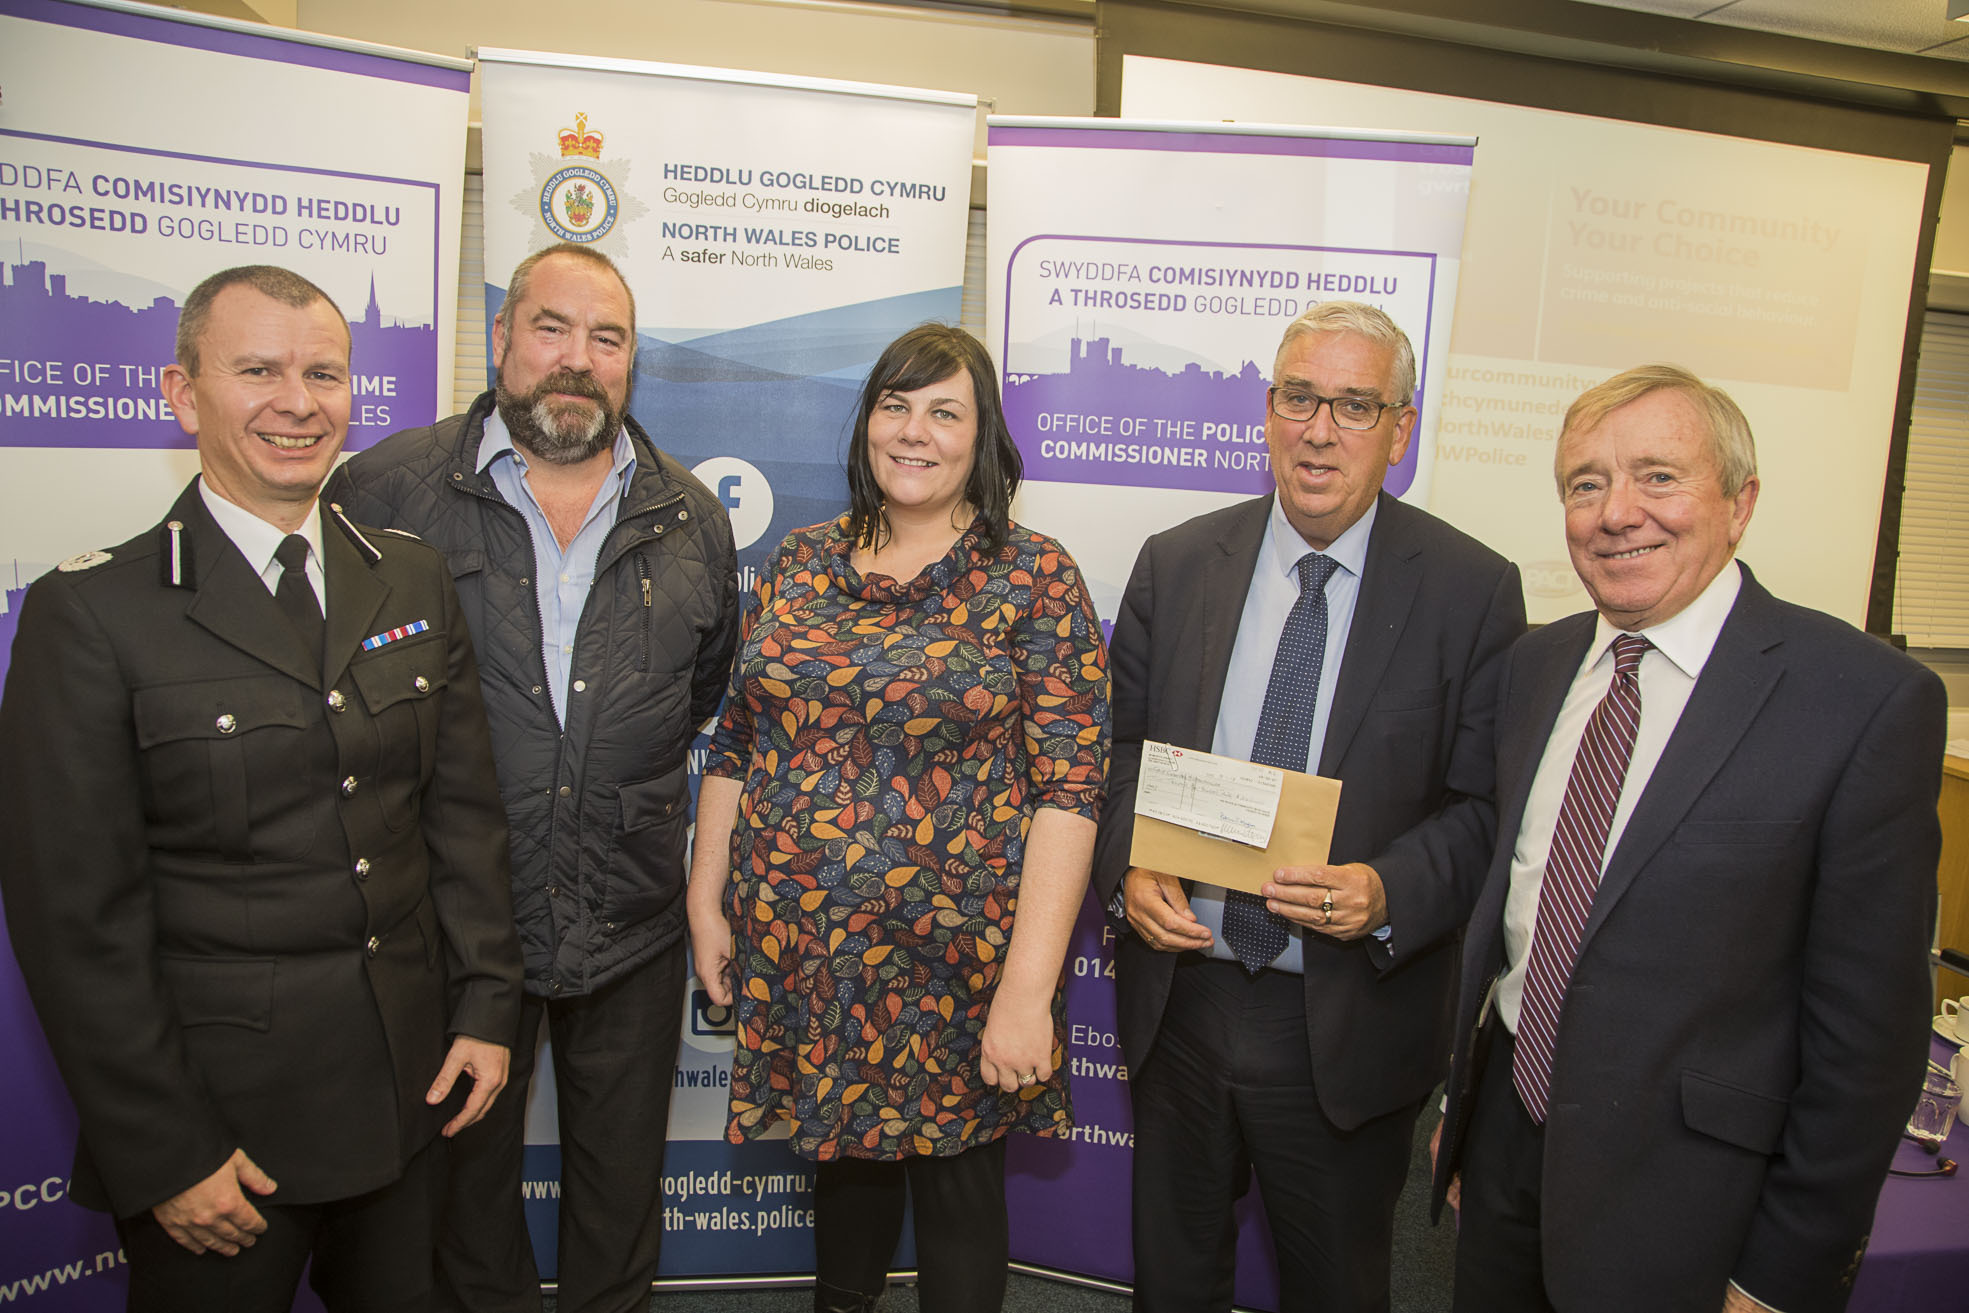 Chief Constable Richard Debicki, Caru Amlwch's Richard Griffiths and Llinos Wyn Williams,North Wales Police and Crime Commissioner Arfon Jones and PACT Chairman David Williams.